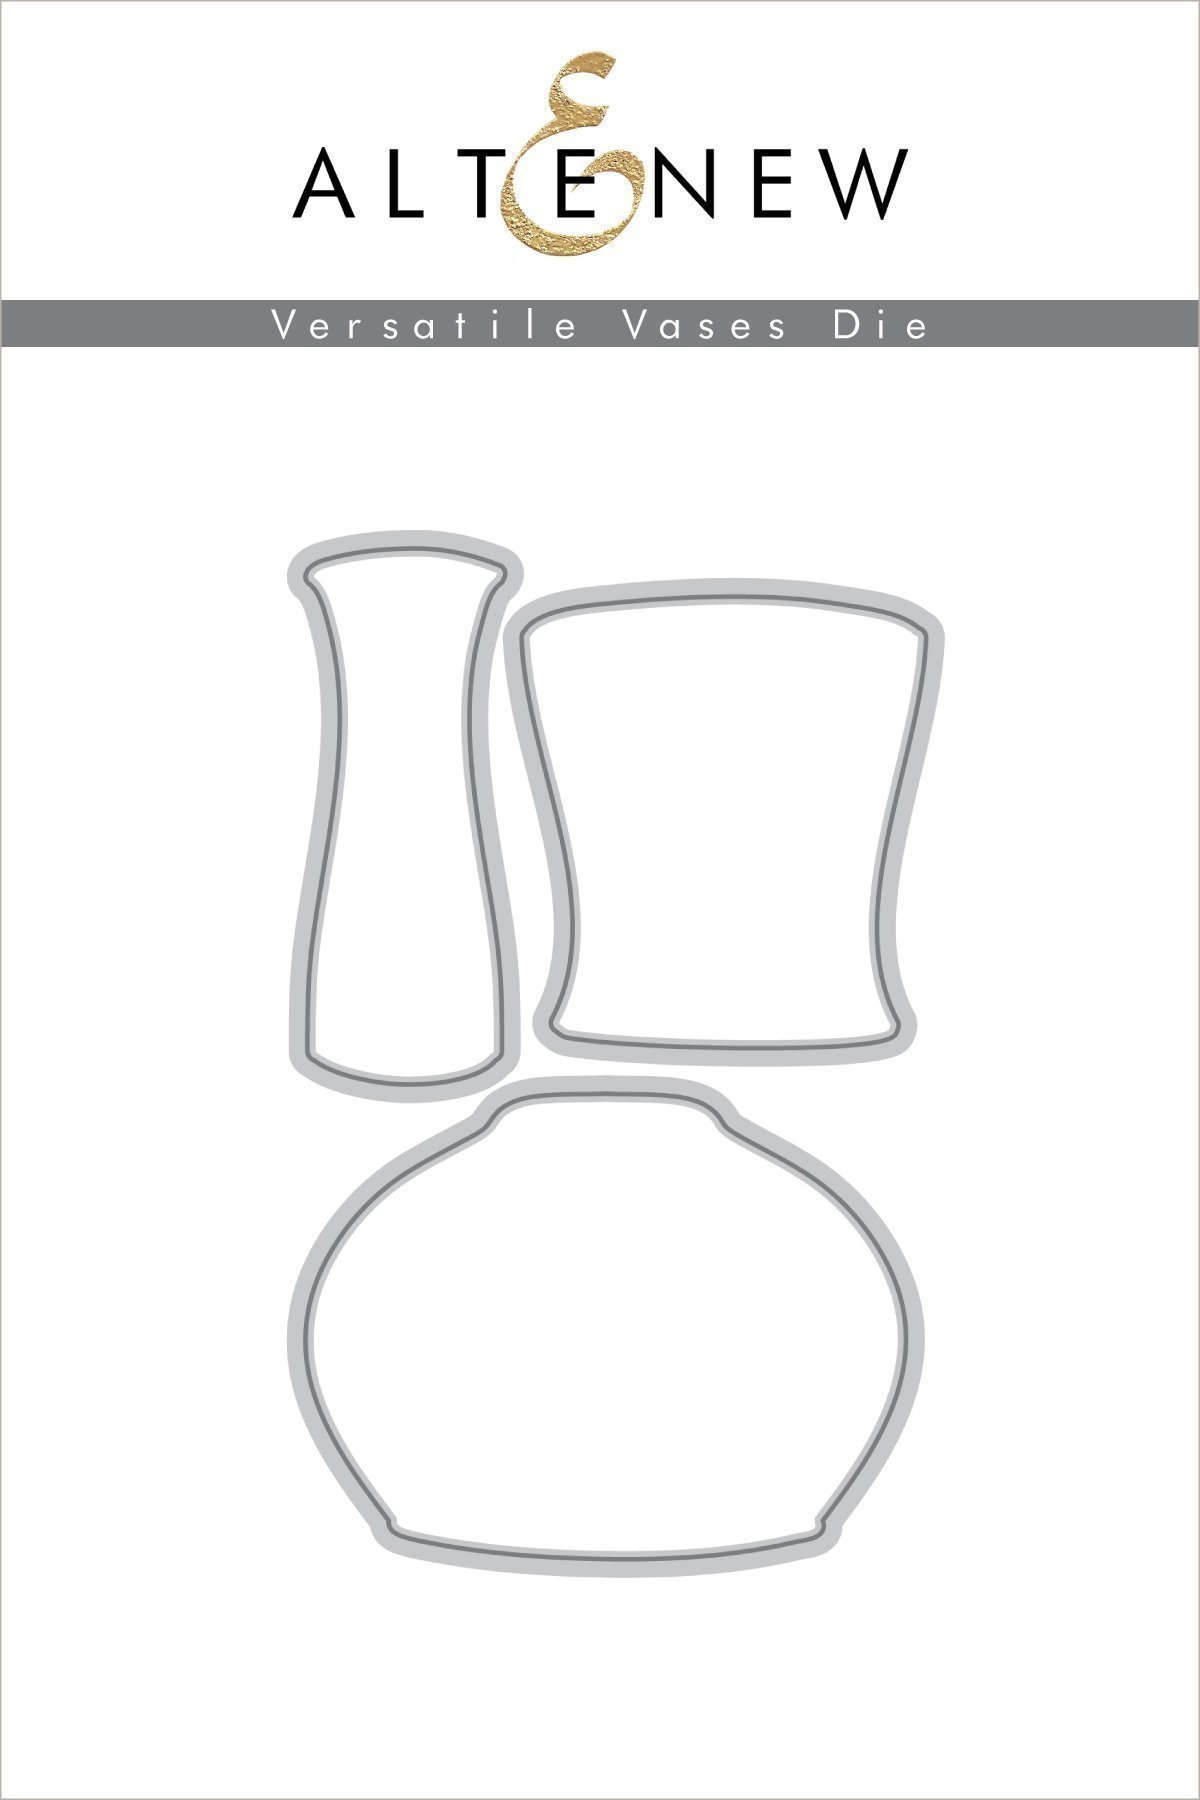 *NEW* - Altenew - Versatile Vases Die Set